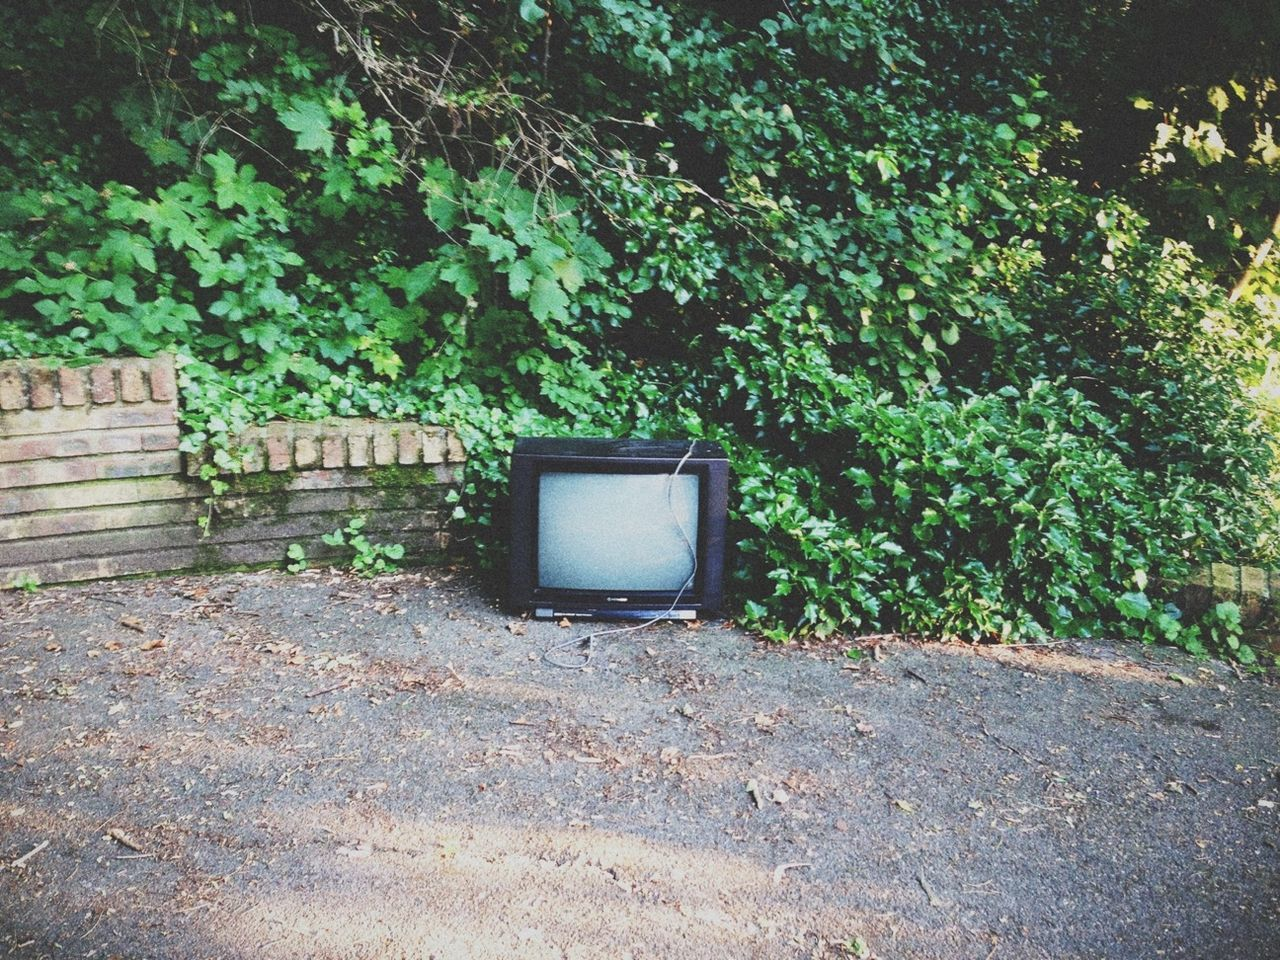 Beautiful stock photos of television, Abandoned, Arts Culture And Entertainment, Day, Discarded